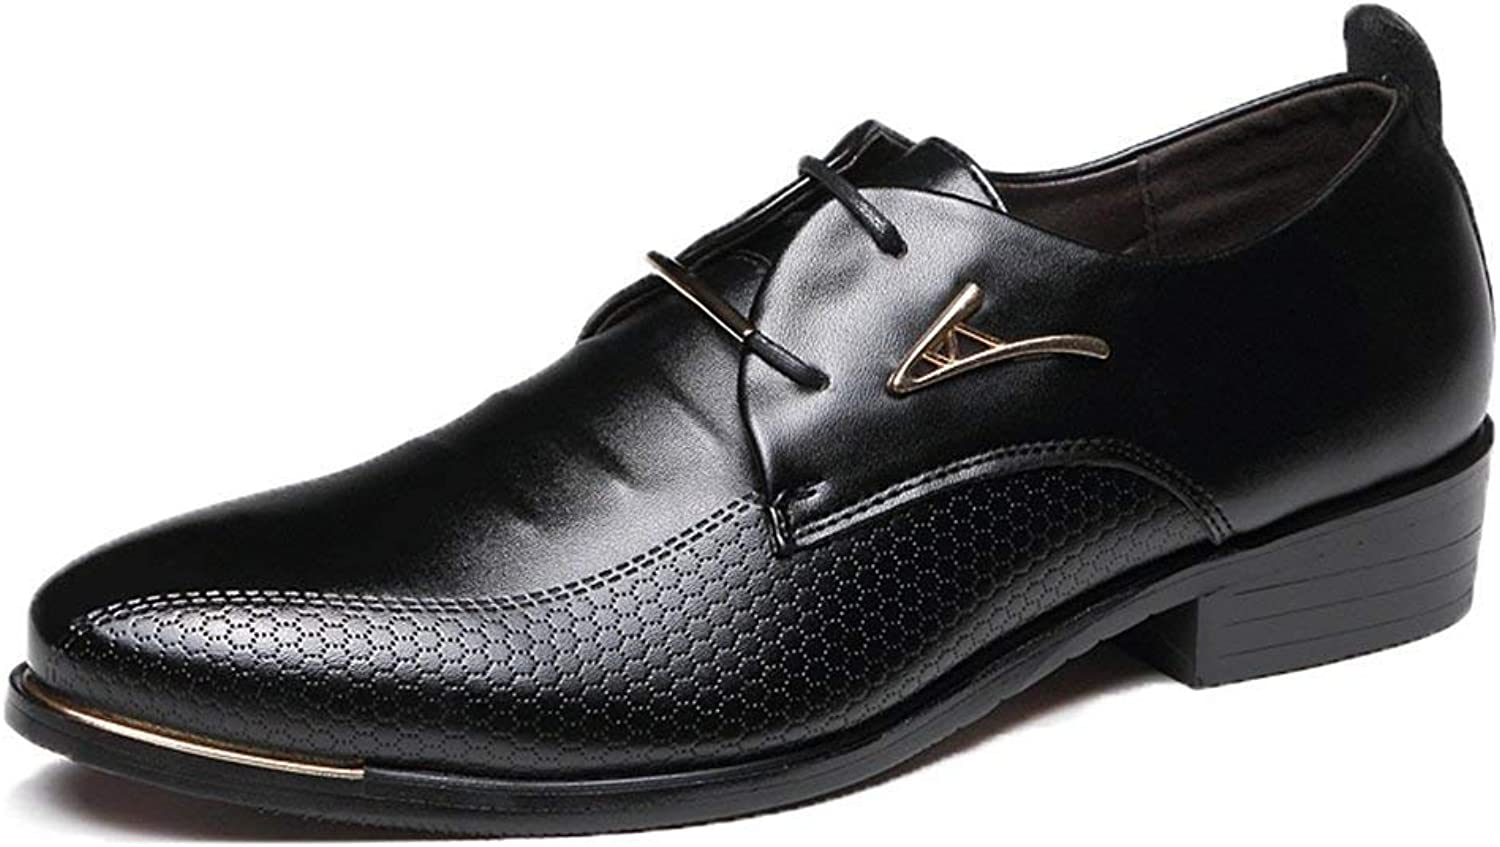 ZHRUI Men Dress shoes Fashion Pointed Toe Business Casual shoes Leather Oxfords shoes (color   Black, Size   7UK=41EU)